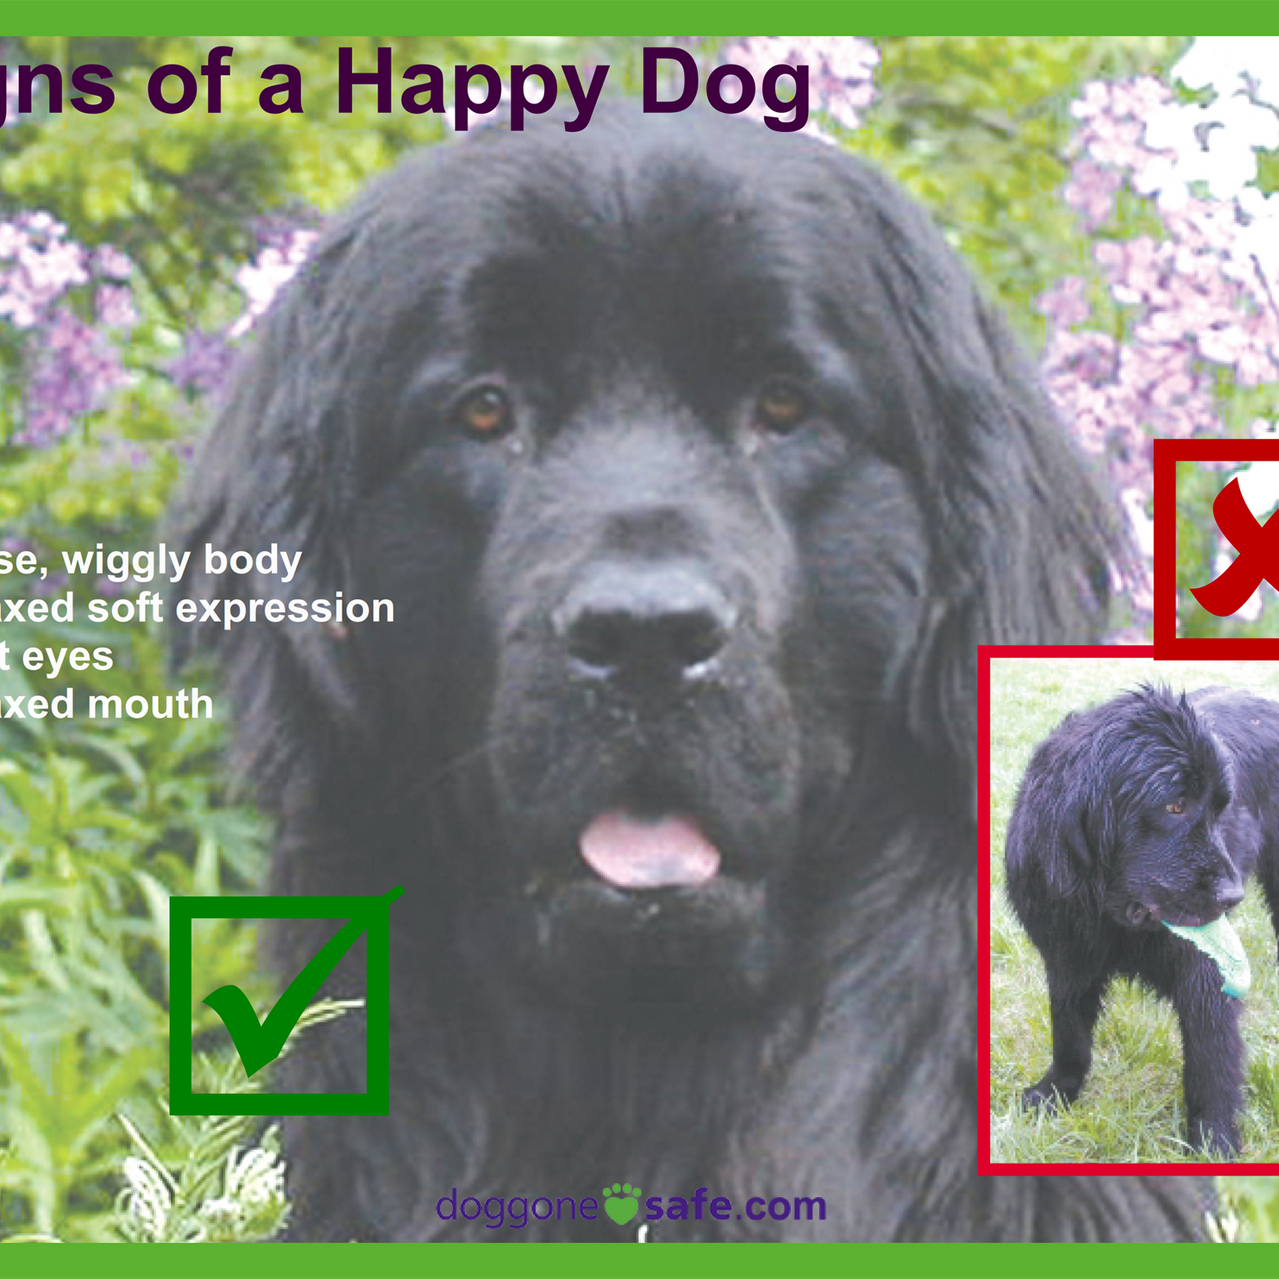 Signs of a Happy Dog and Stay Away_005